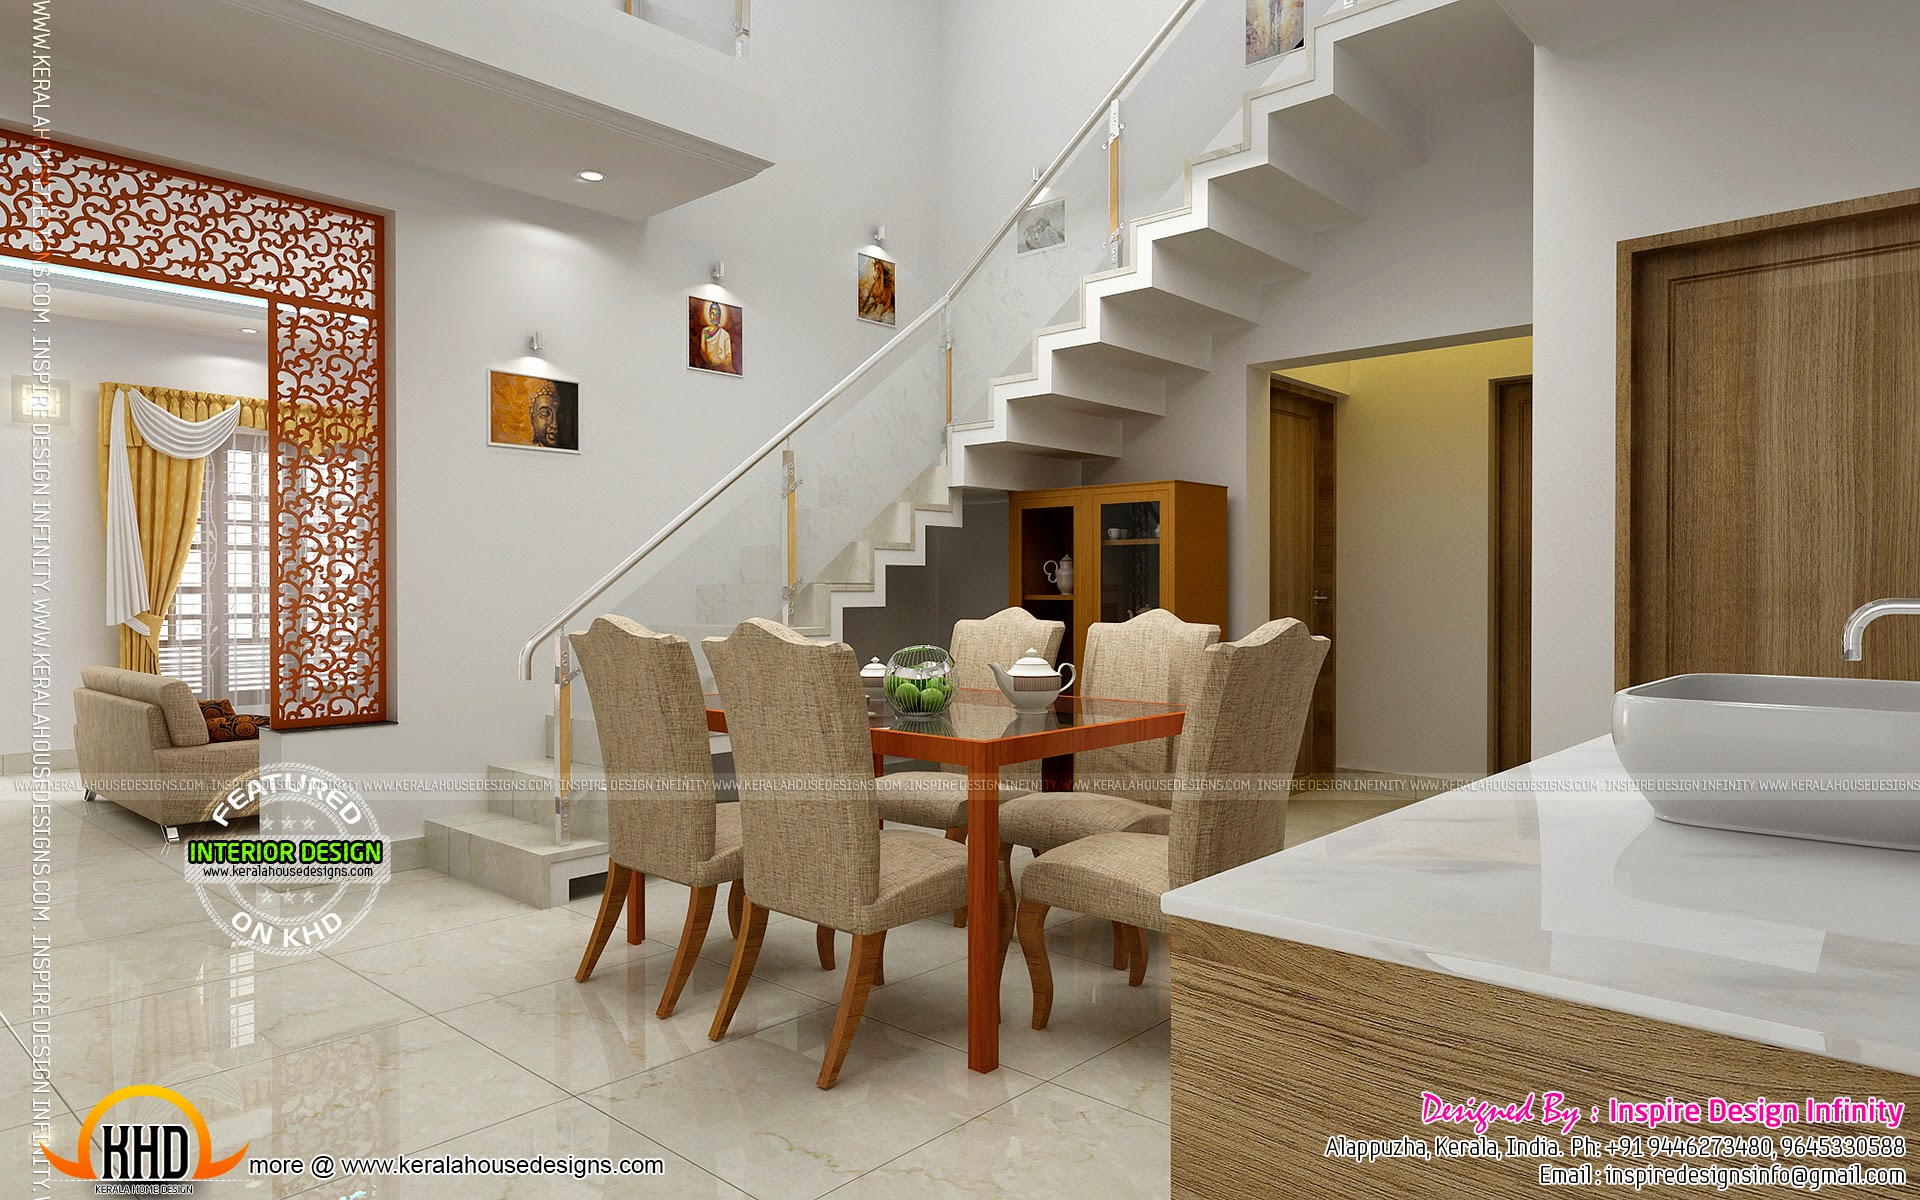 Dining room designs kerala home design and floor plans for Designs of dining room